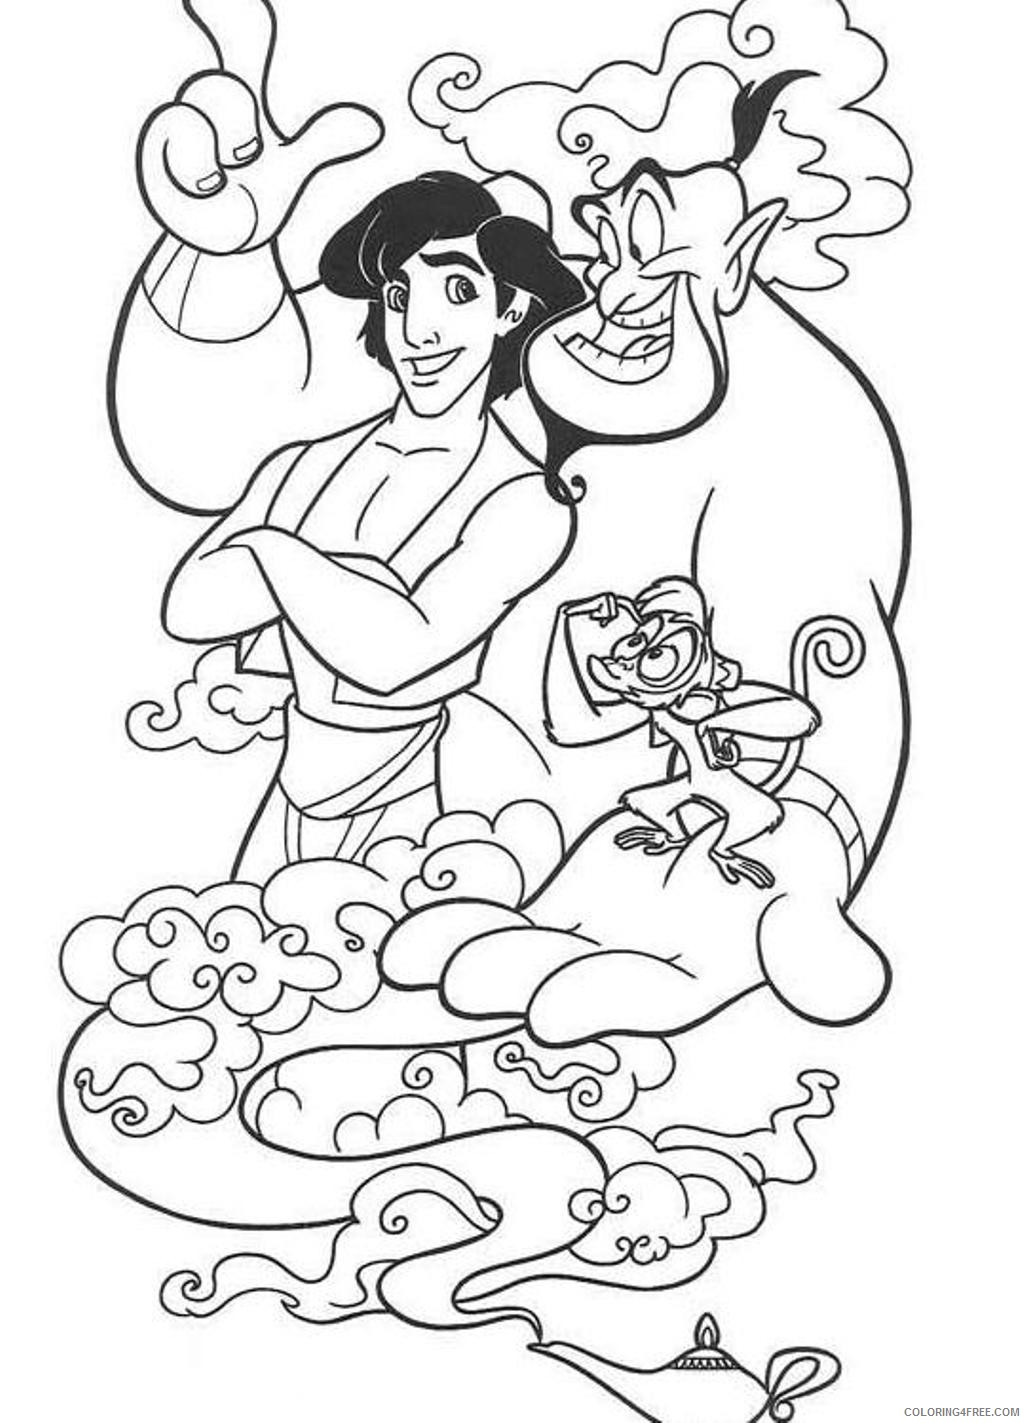 9 Free Printable New Aladdin Movie Coloring Pages - 1NZA | 1423x1026